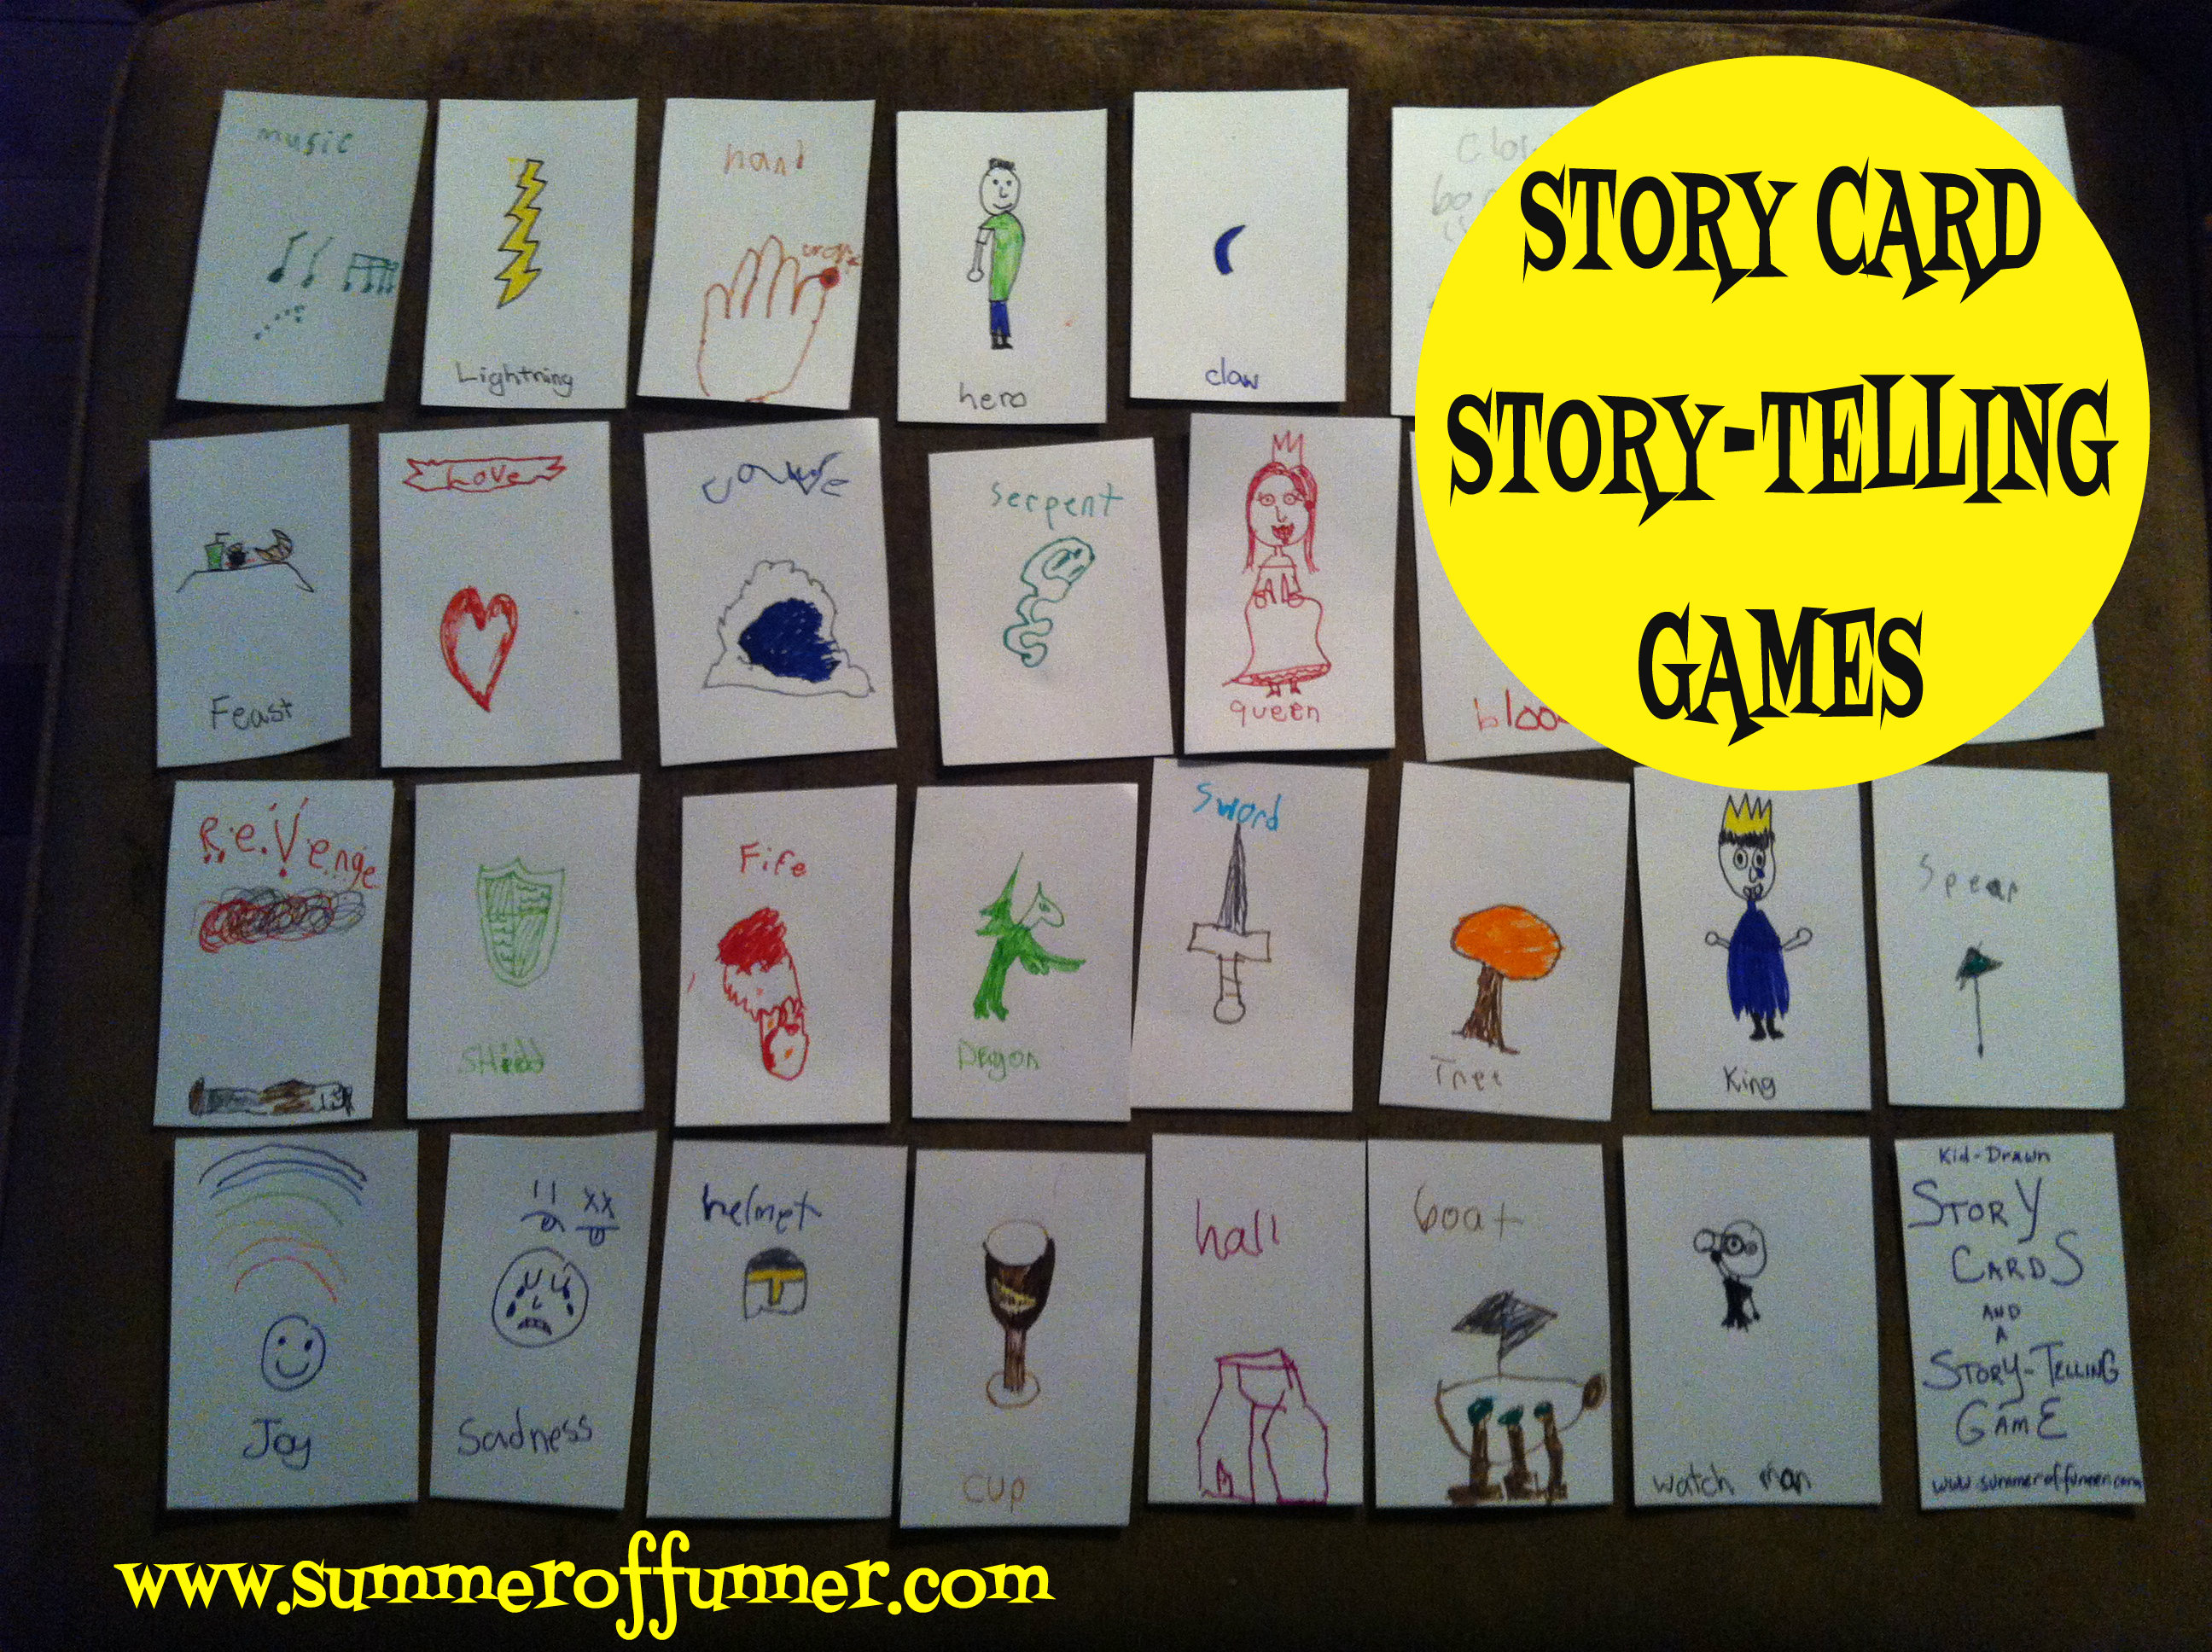 Kid-Drawn Story Cards & Story-Telling Games - Summer of Funner